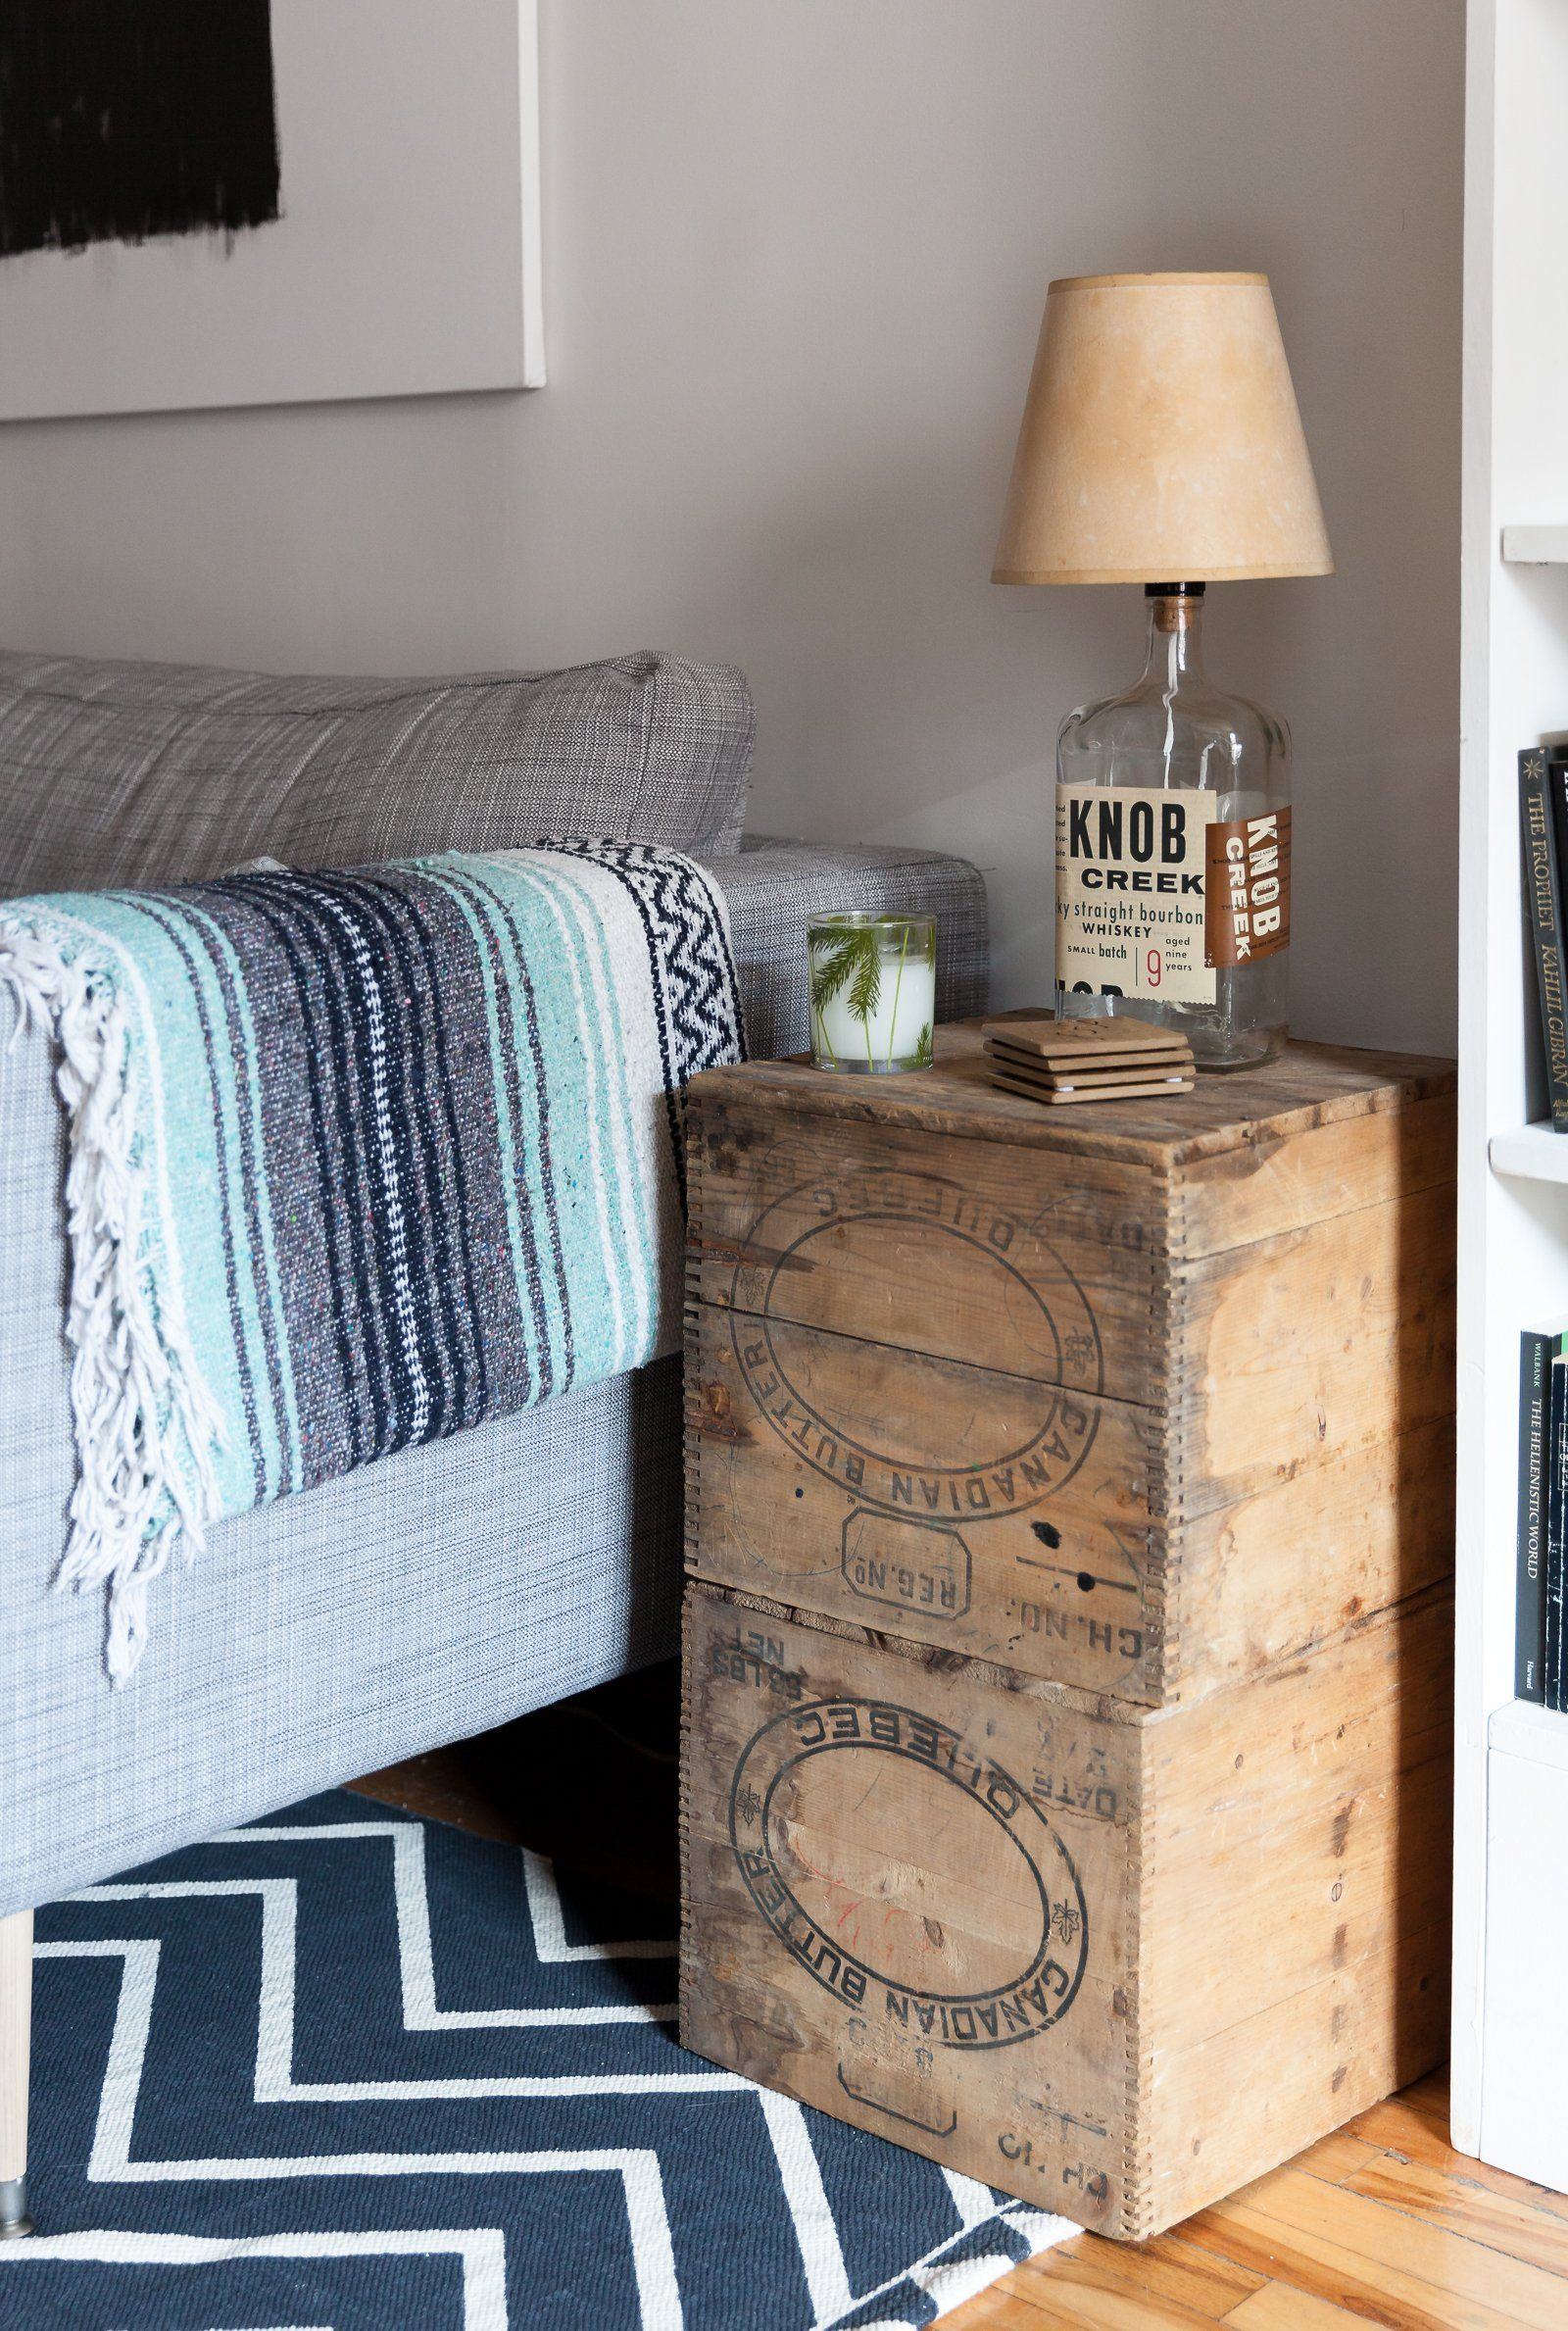 Paint Colors That Match This Apartment Therapy Photo Sw 6230